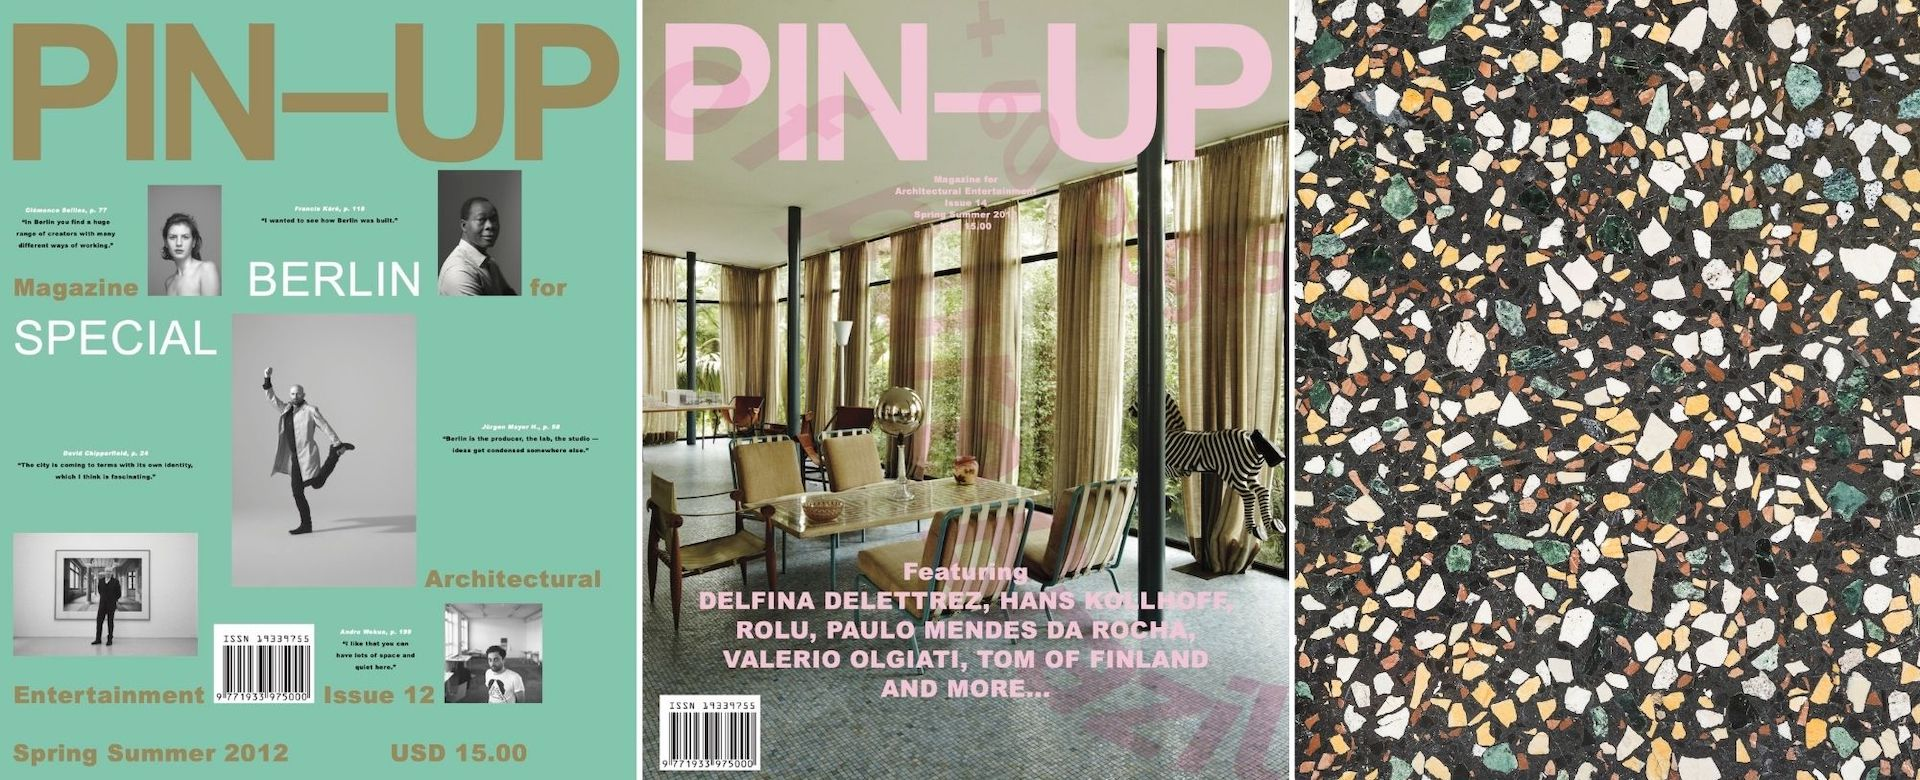 Berlin Issue: PIN-UP 12, Spring Summer 2012   Brazil Issue: PIN-UP 14, Spring Summer 2013   Terrazzo Floor at Malpensa Airport by Ettore Sottsass. Featured in Milan Issue: PIN-UP 16,  Spring Summer 2014. Photo © Delfino Sisto Legnani for PIN–UP